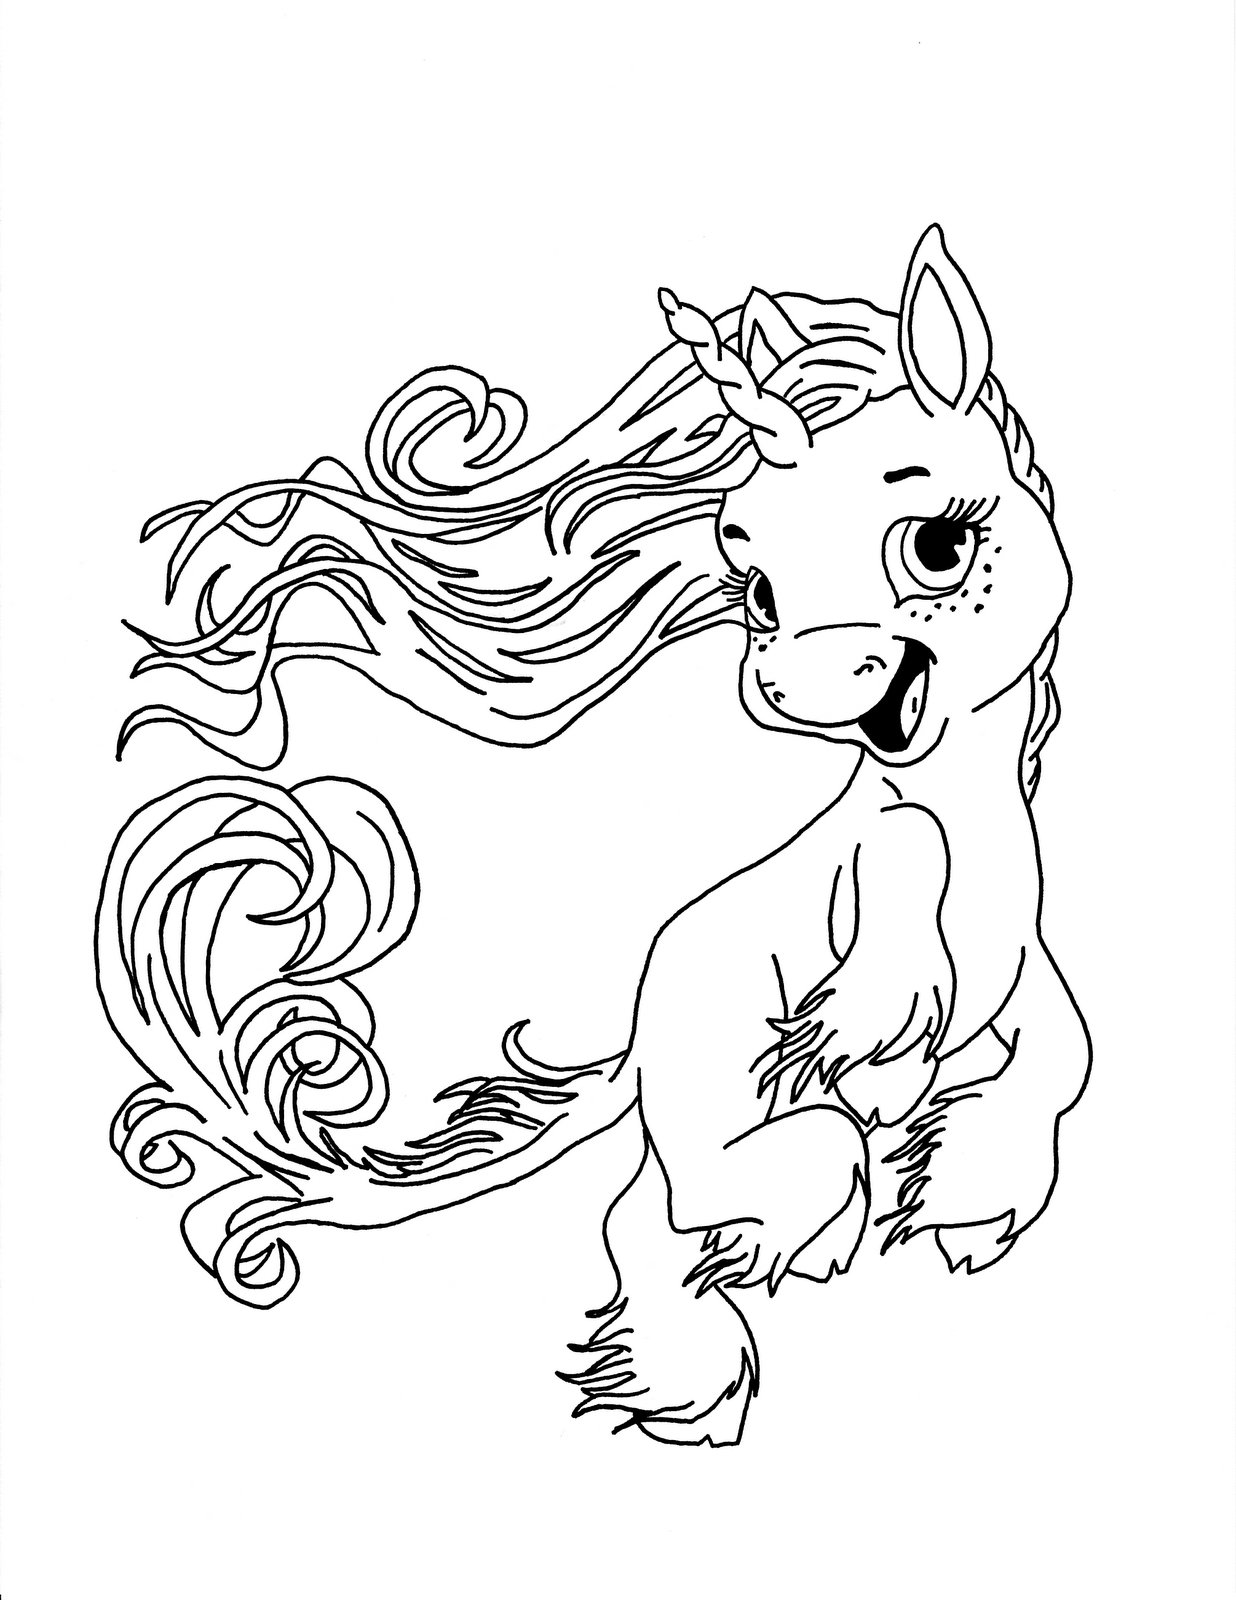 coloring pages for teenagers difficult fairy coloring pages for teenagers difficult fairy   Google Search  coloring pages for teenagers difficult fairy